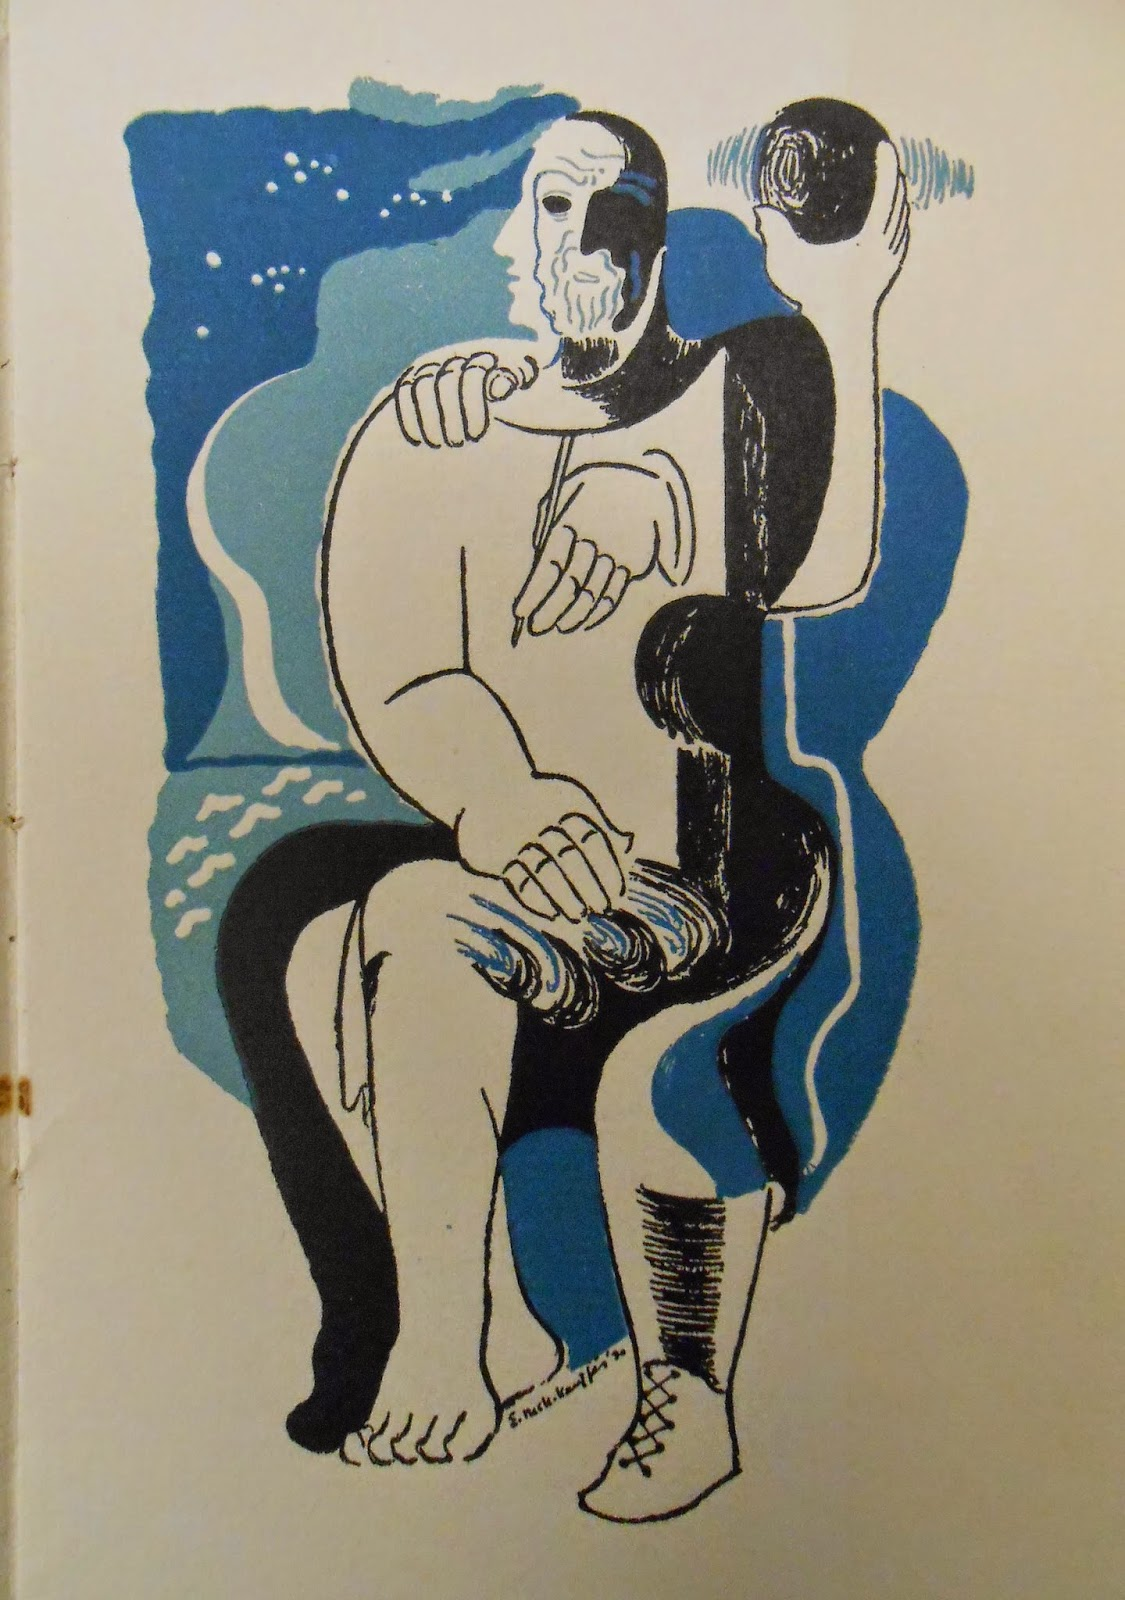 An abstract figural print in blue and black.